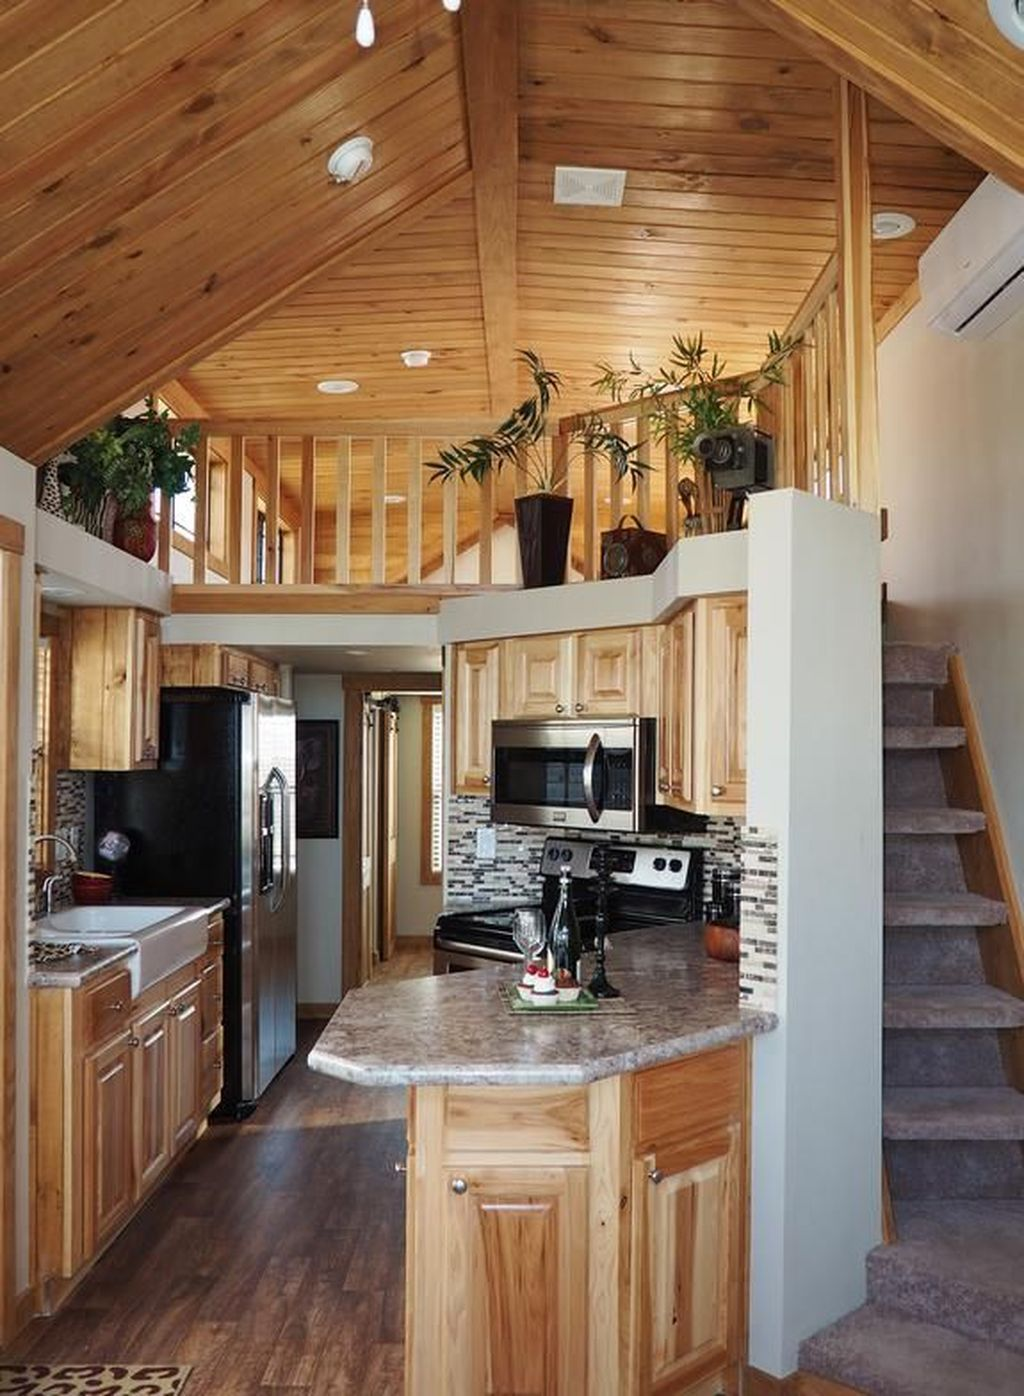 42 Awesome Tiny House Ideas Trendehouse Tiny House Design Tiny House Living Tiny House Interior Design